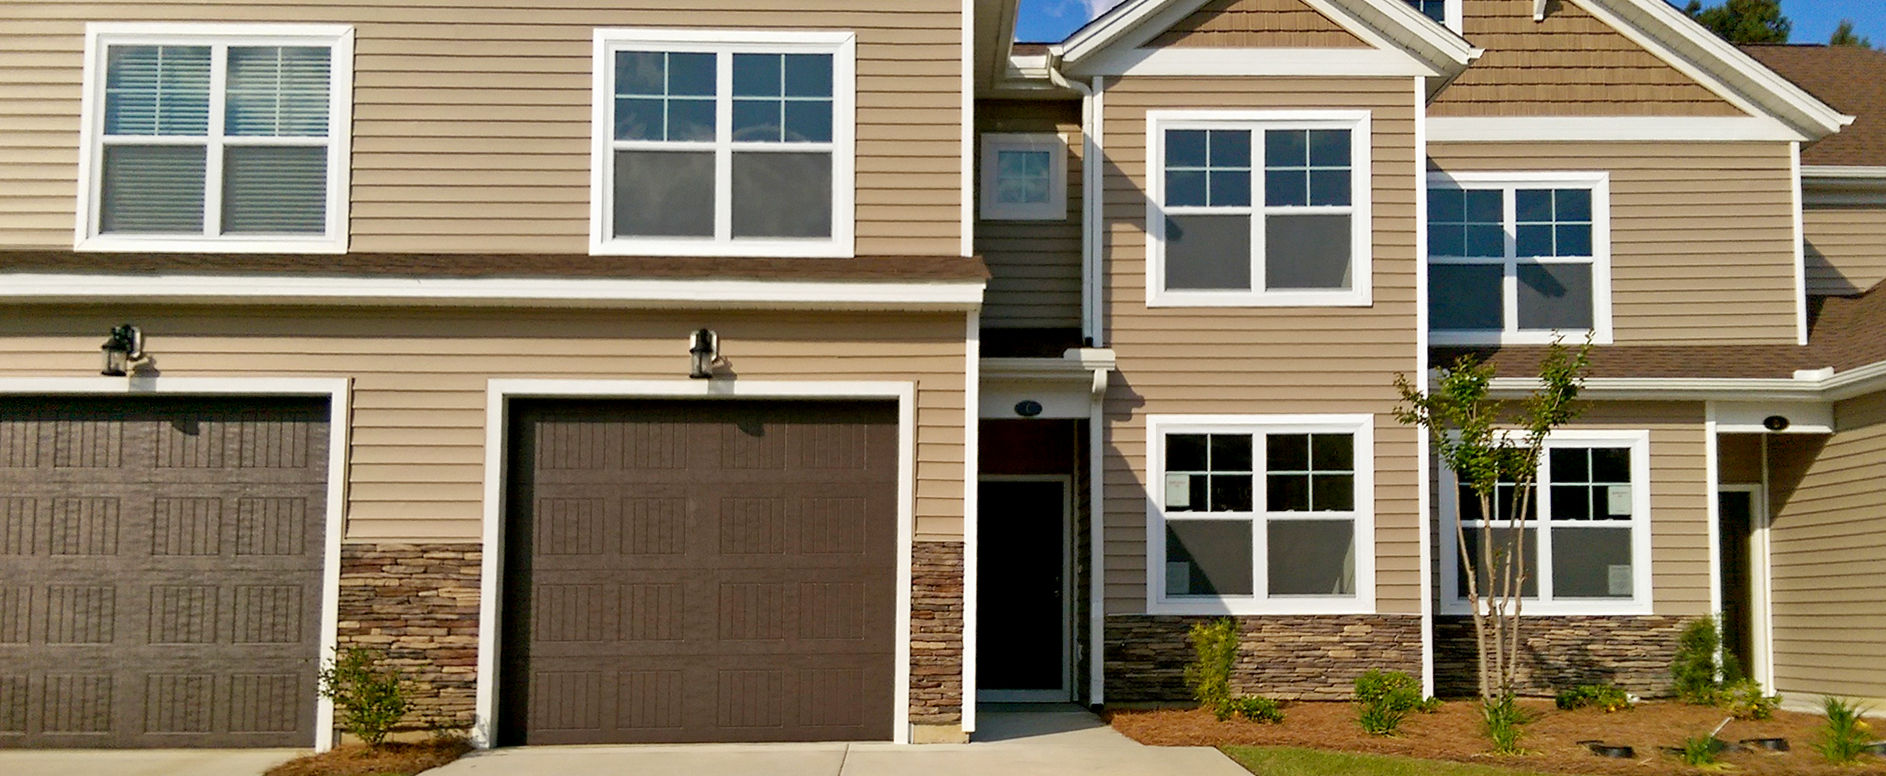 Town Homes For Sale in Berwick at windsor Plantation, Myrtle Beach SC